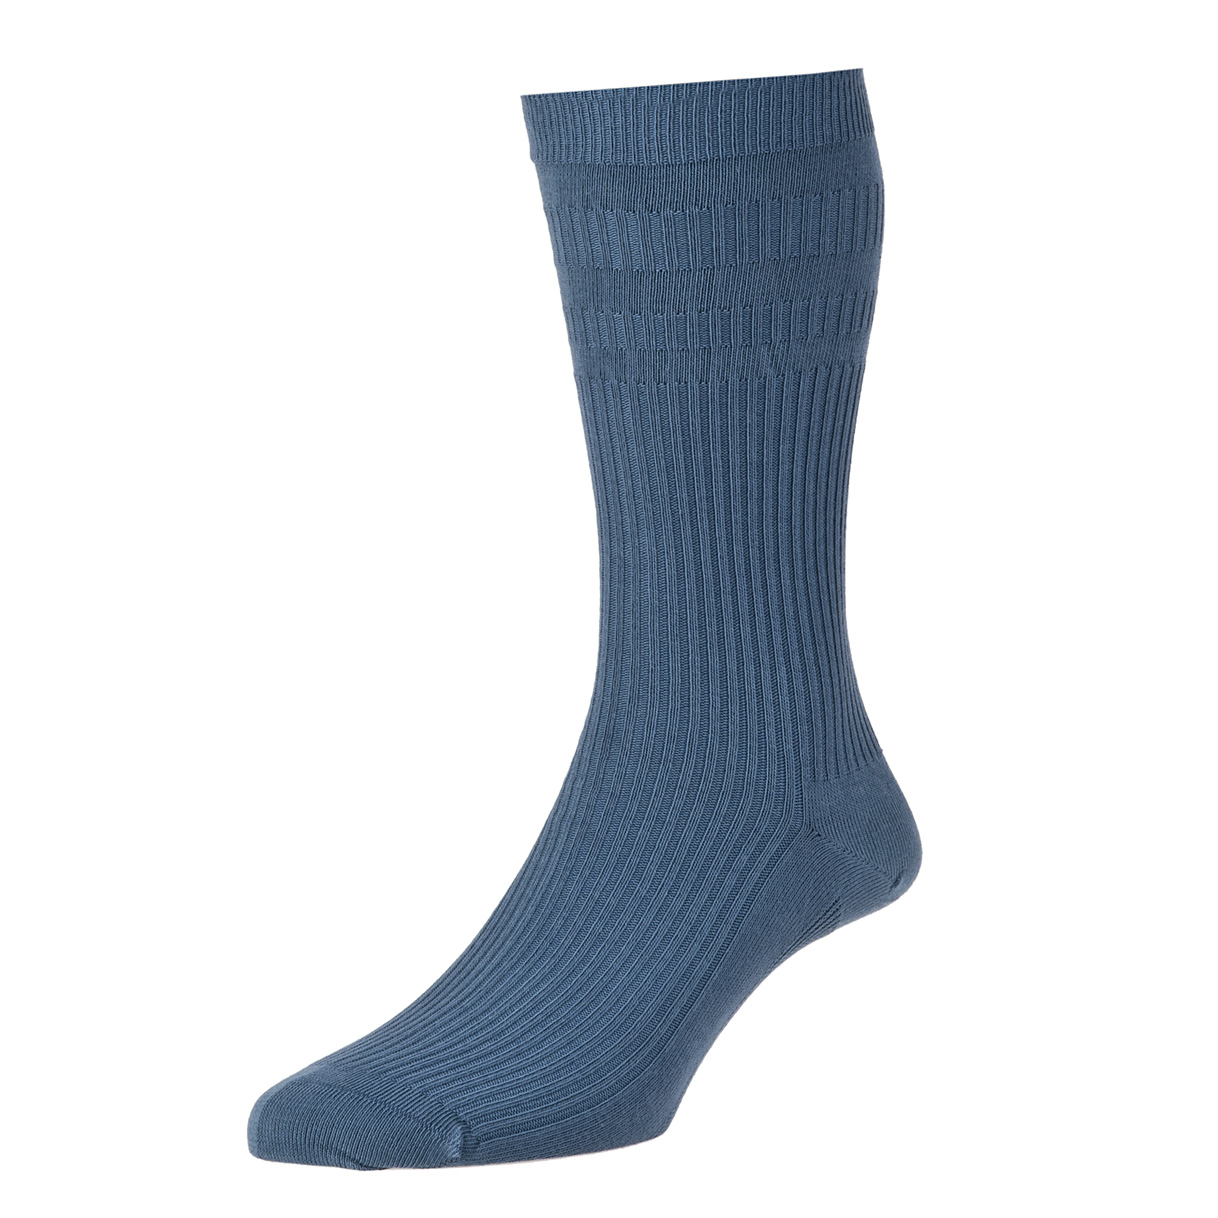 HJ Hall Softop Mens Cotton Socks size 11-13  Slate Blue HJ91